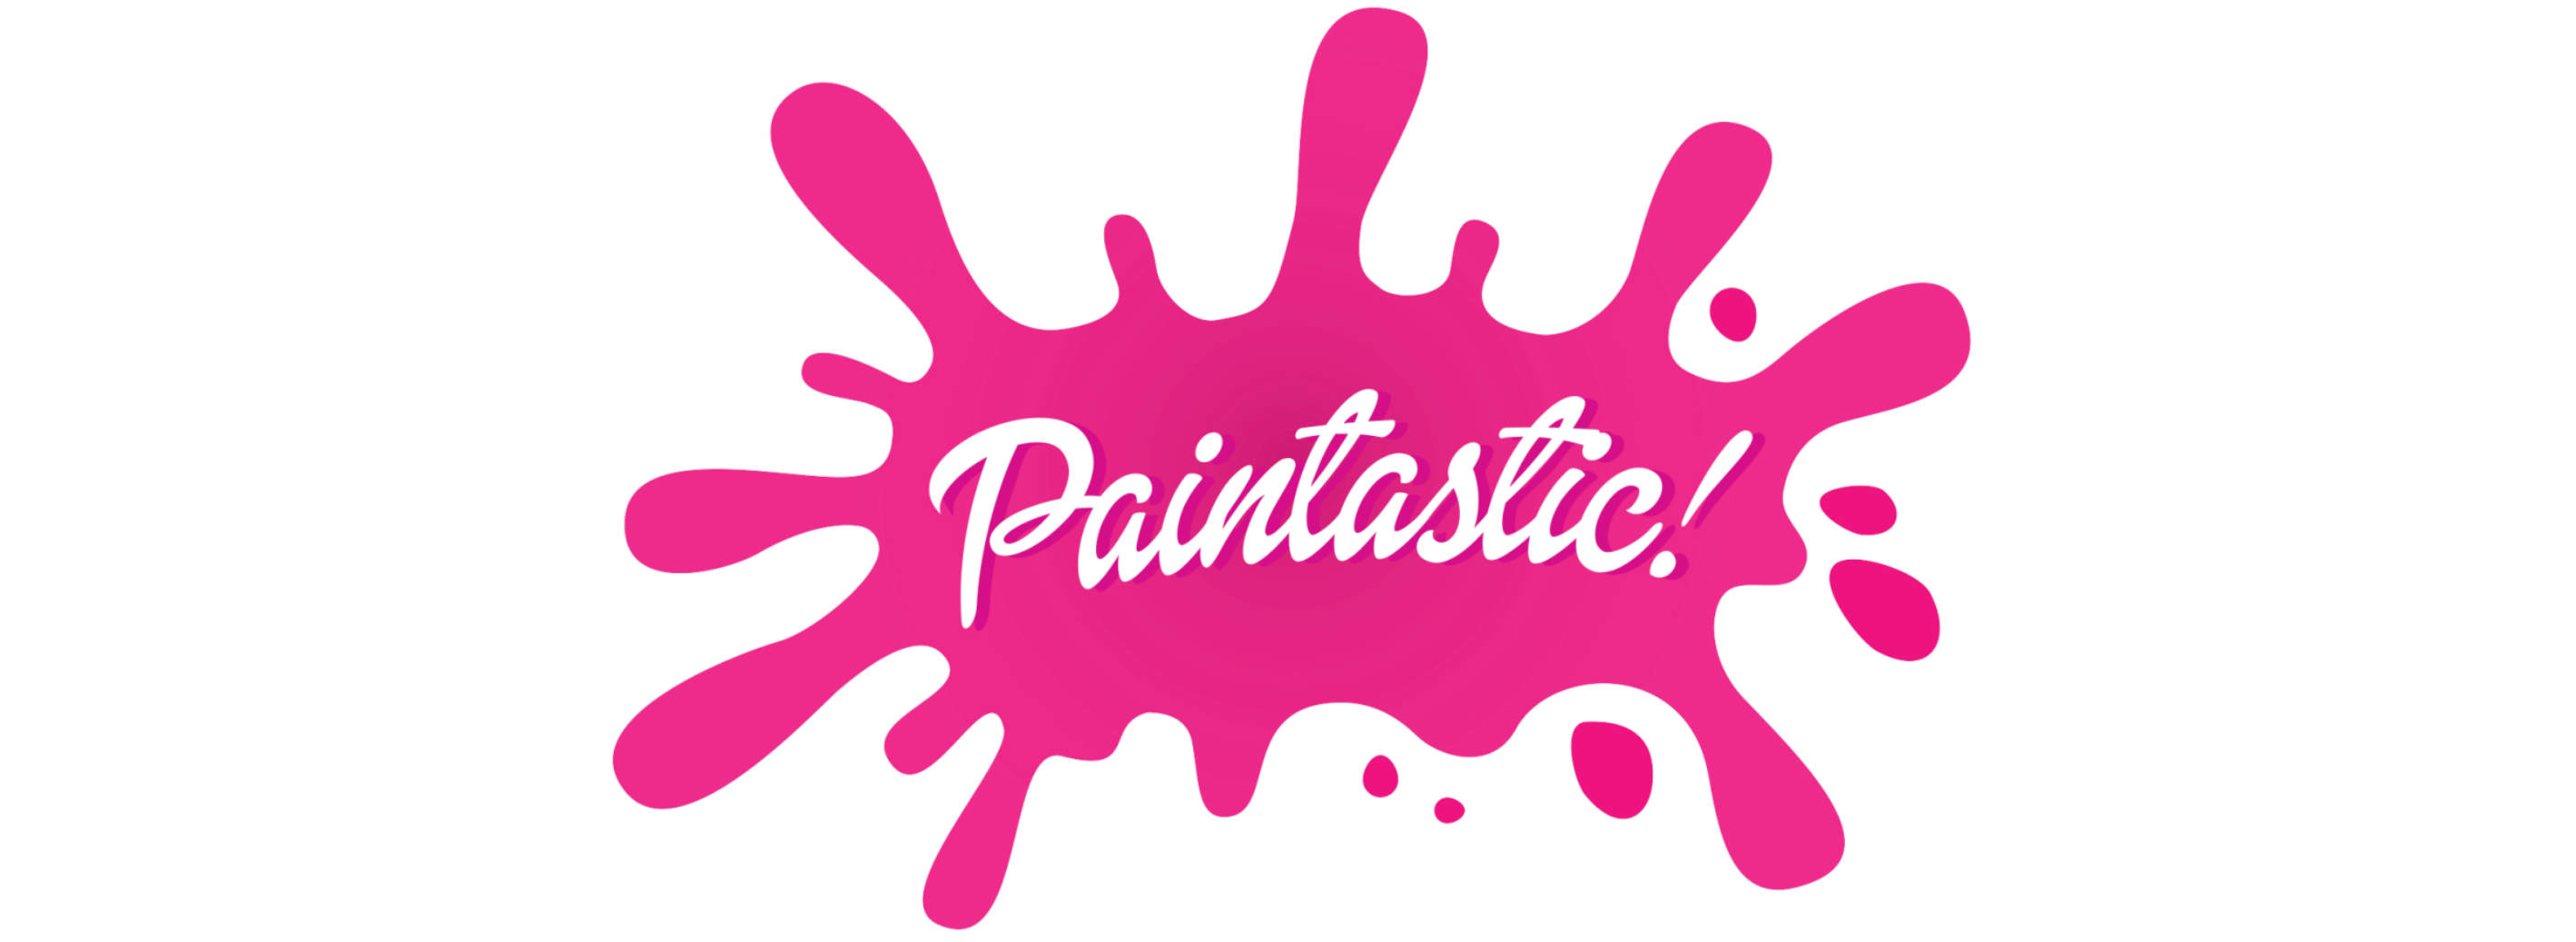 A pink splash of paint with Paintastic! on it